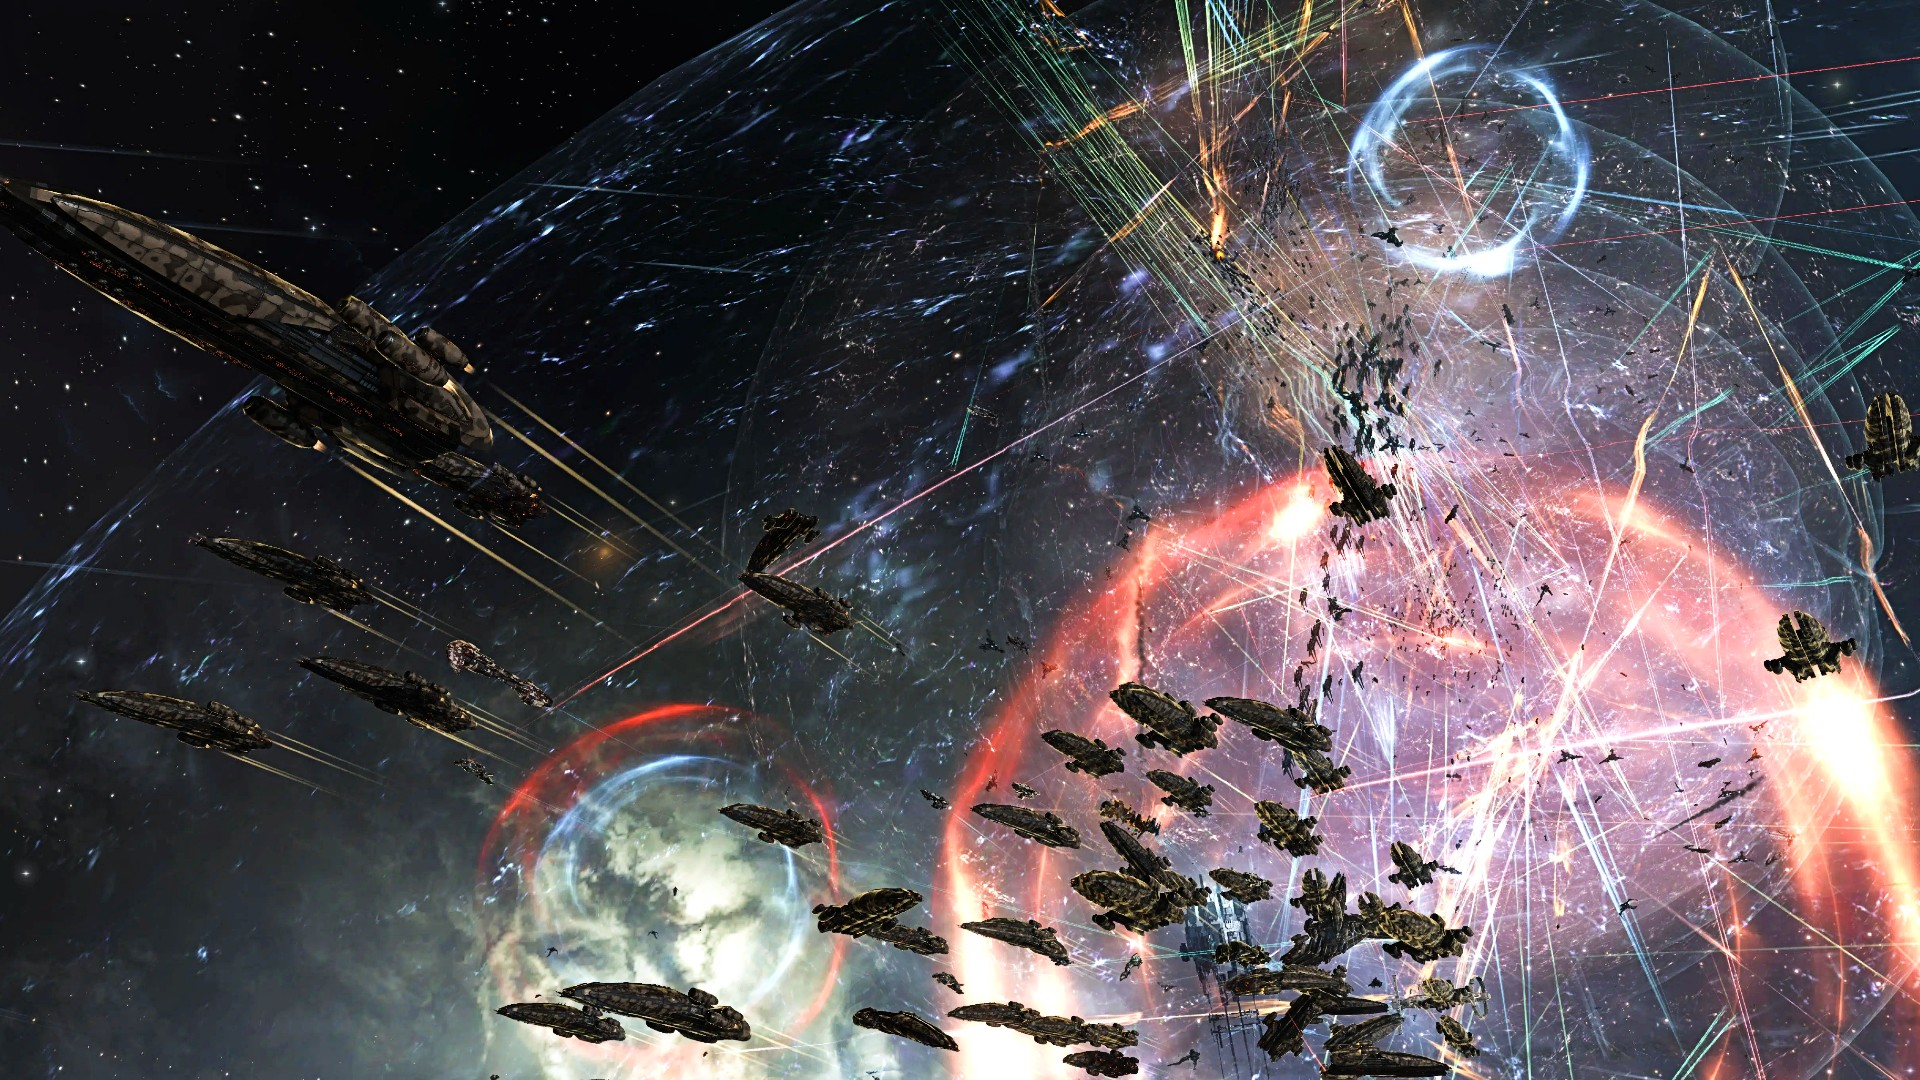 Eve Online's World War Bee II is ending after more than a year